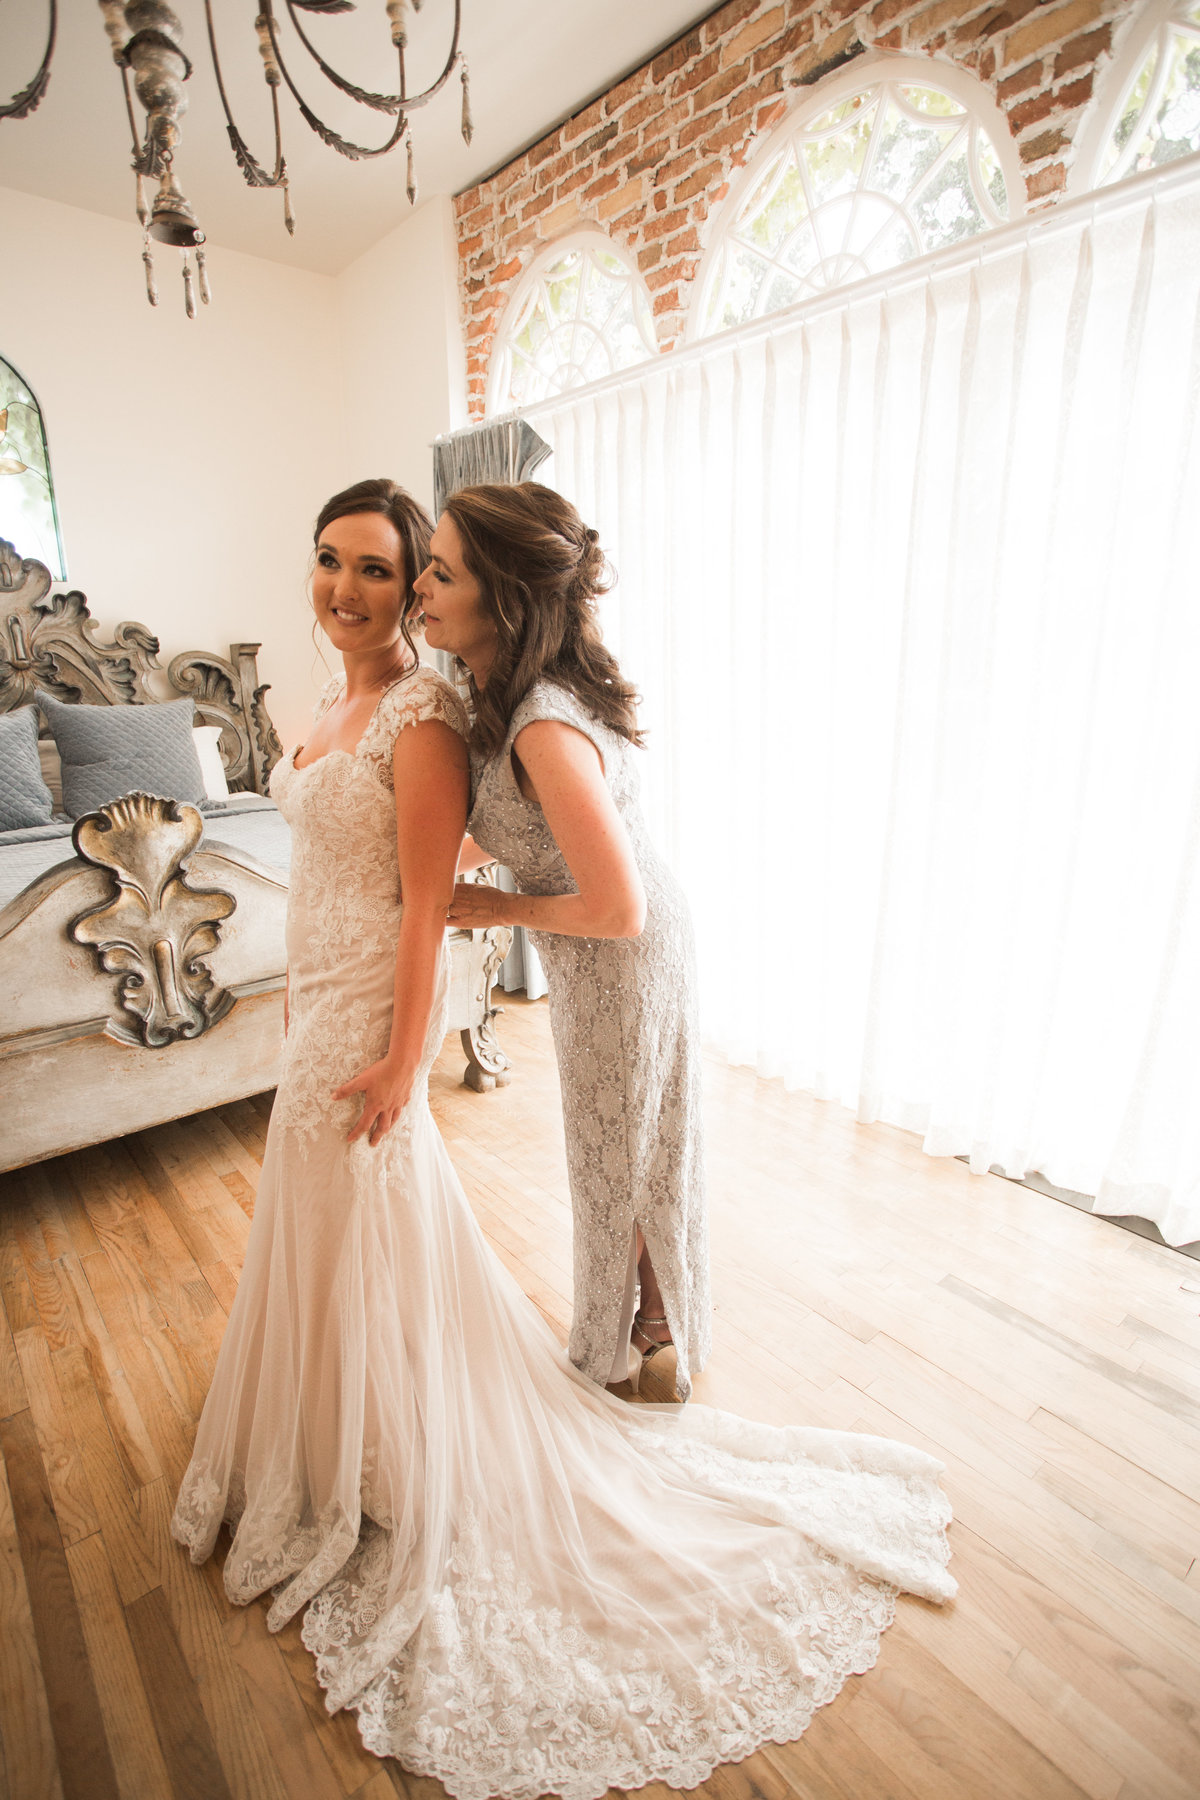 Mother helping bride into dress at 1880 Union Hotel Wedding